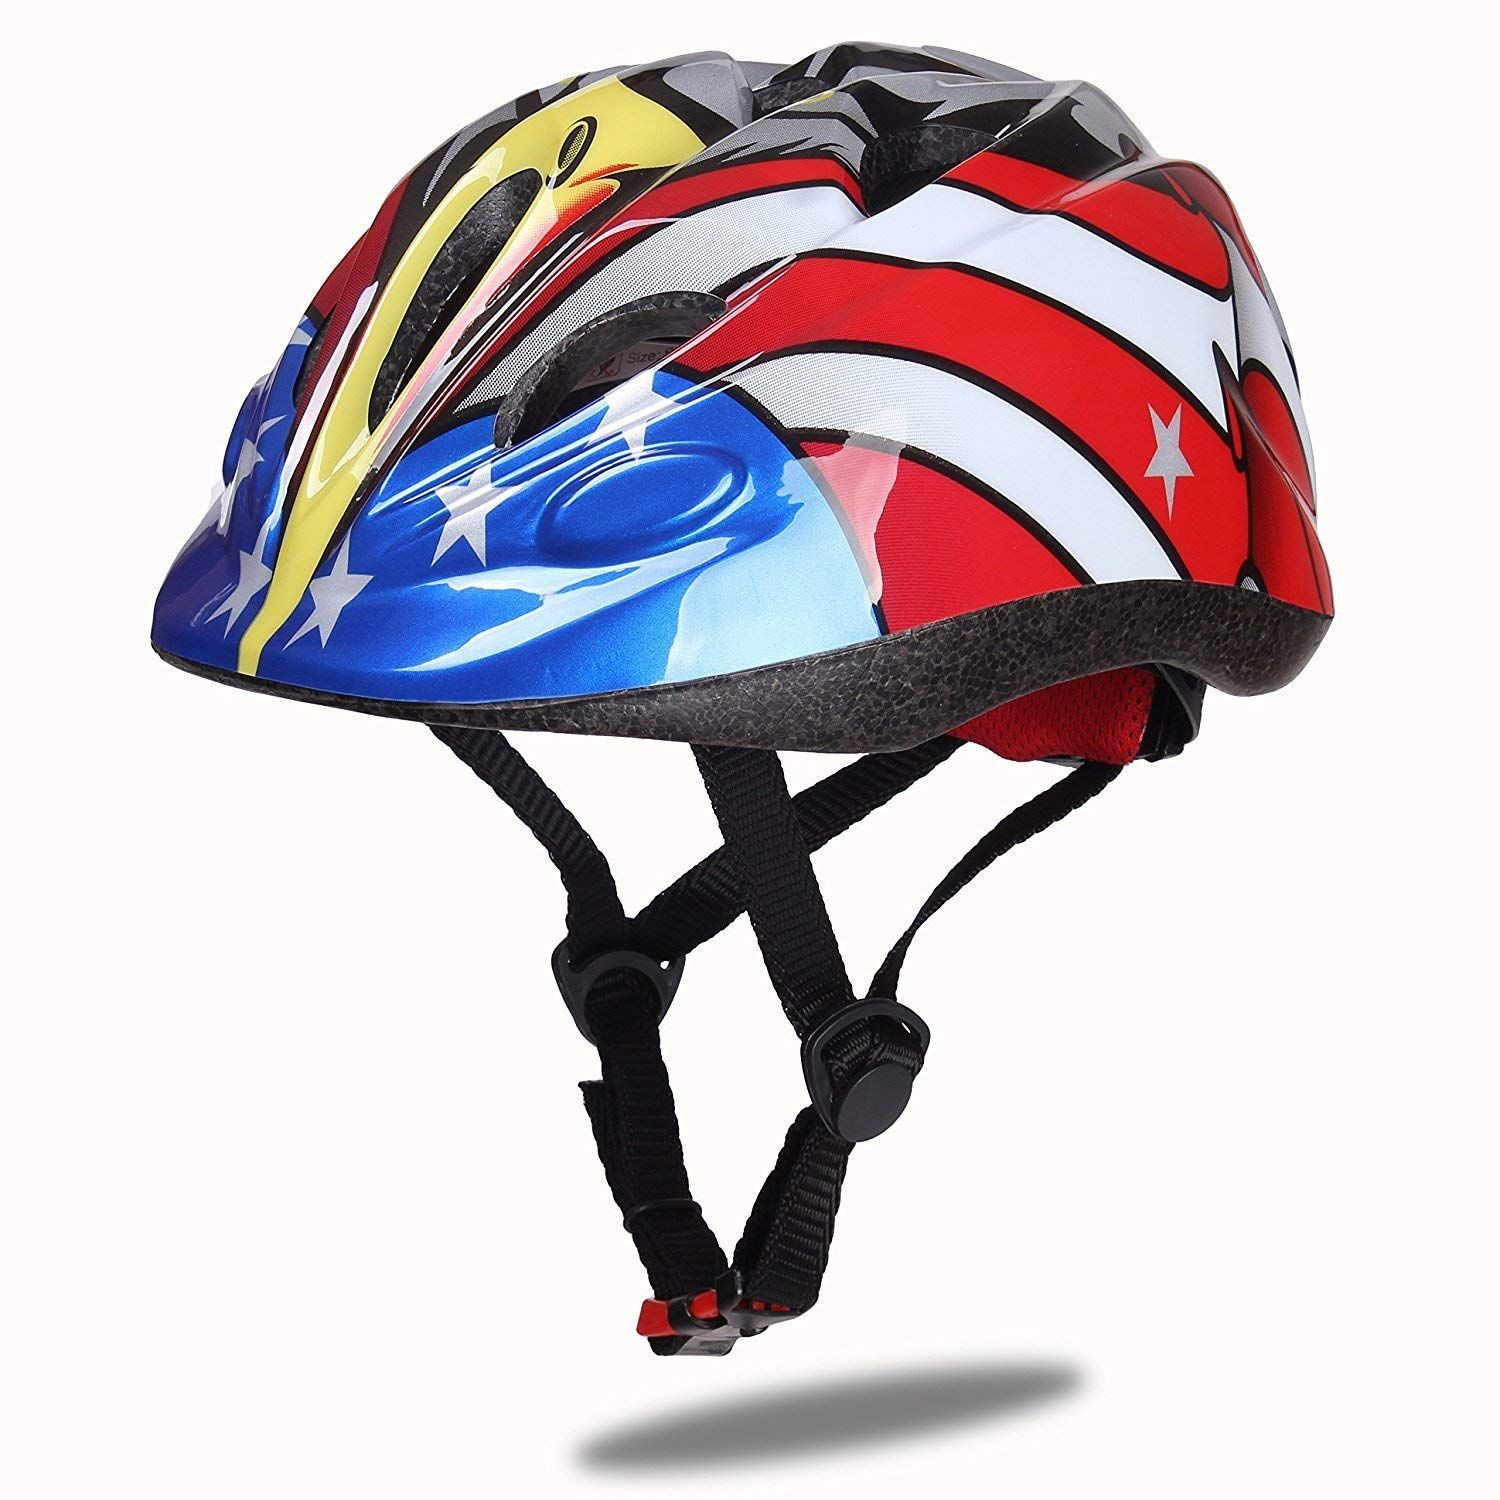 Multi-Sports Safe Durable Comfortable Bicycle Skateboard Helmets Dostar Kids Bike Helmet CPSC Certified Lightweight Impact Resistance Adjustable Helmet for Ages 5-14